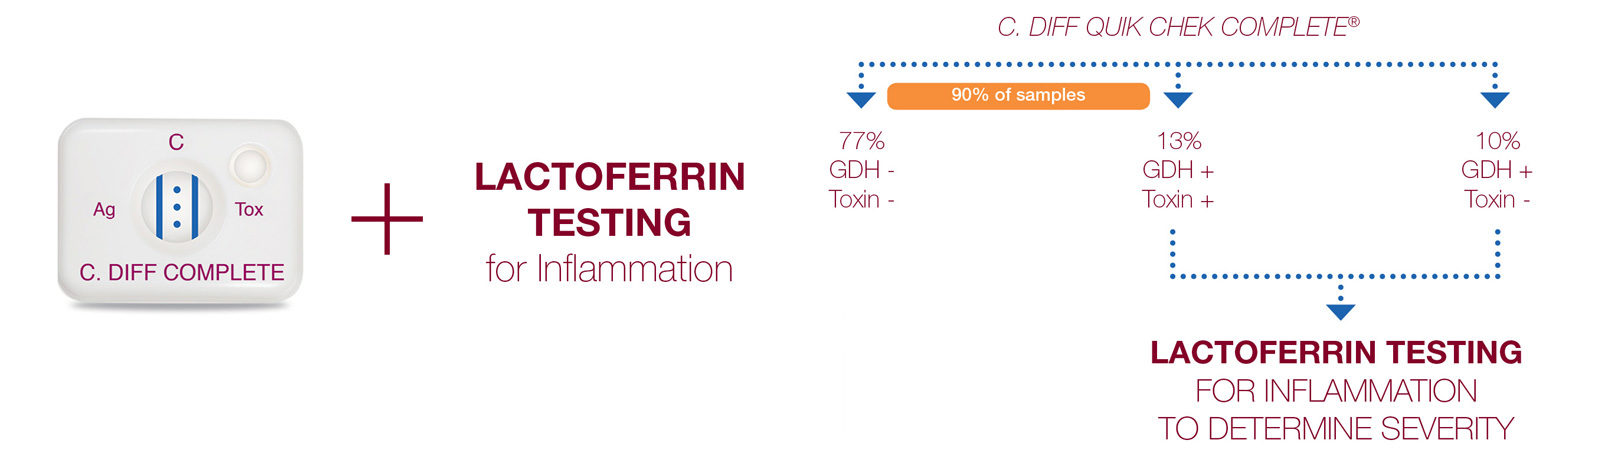 C.Diff complete + Lactoferrin testing for inflammation. C.Diff Quik Chek Complete®